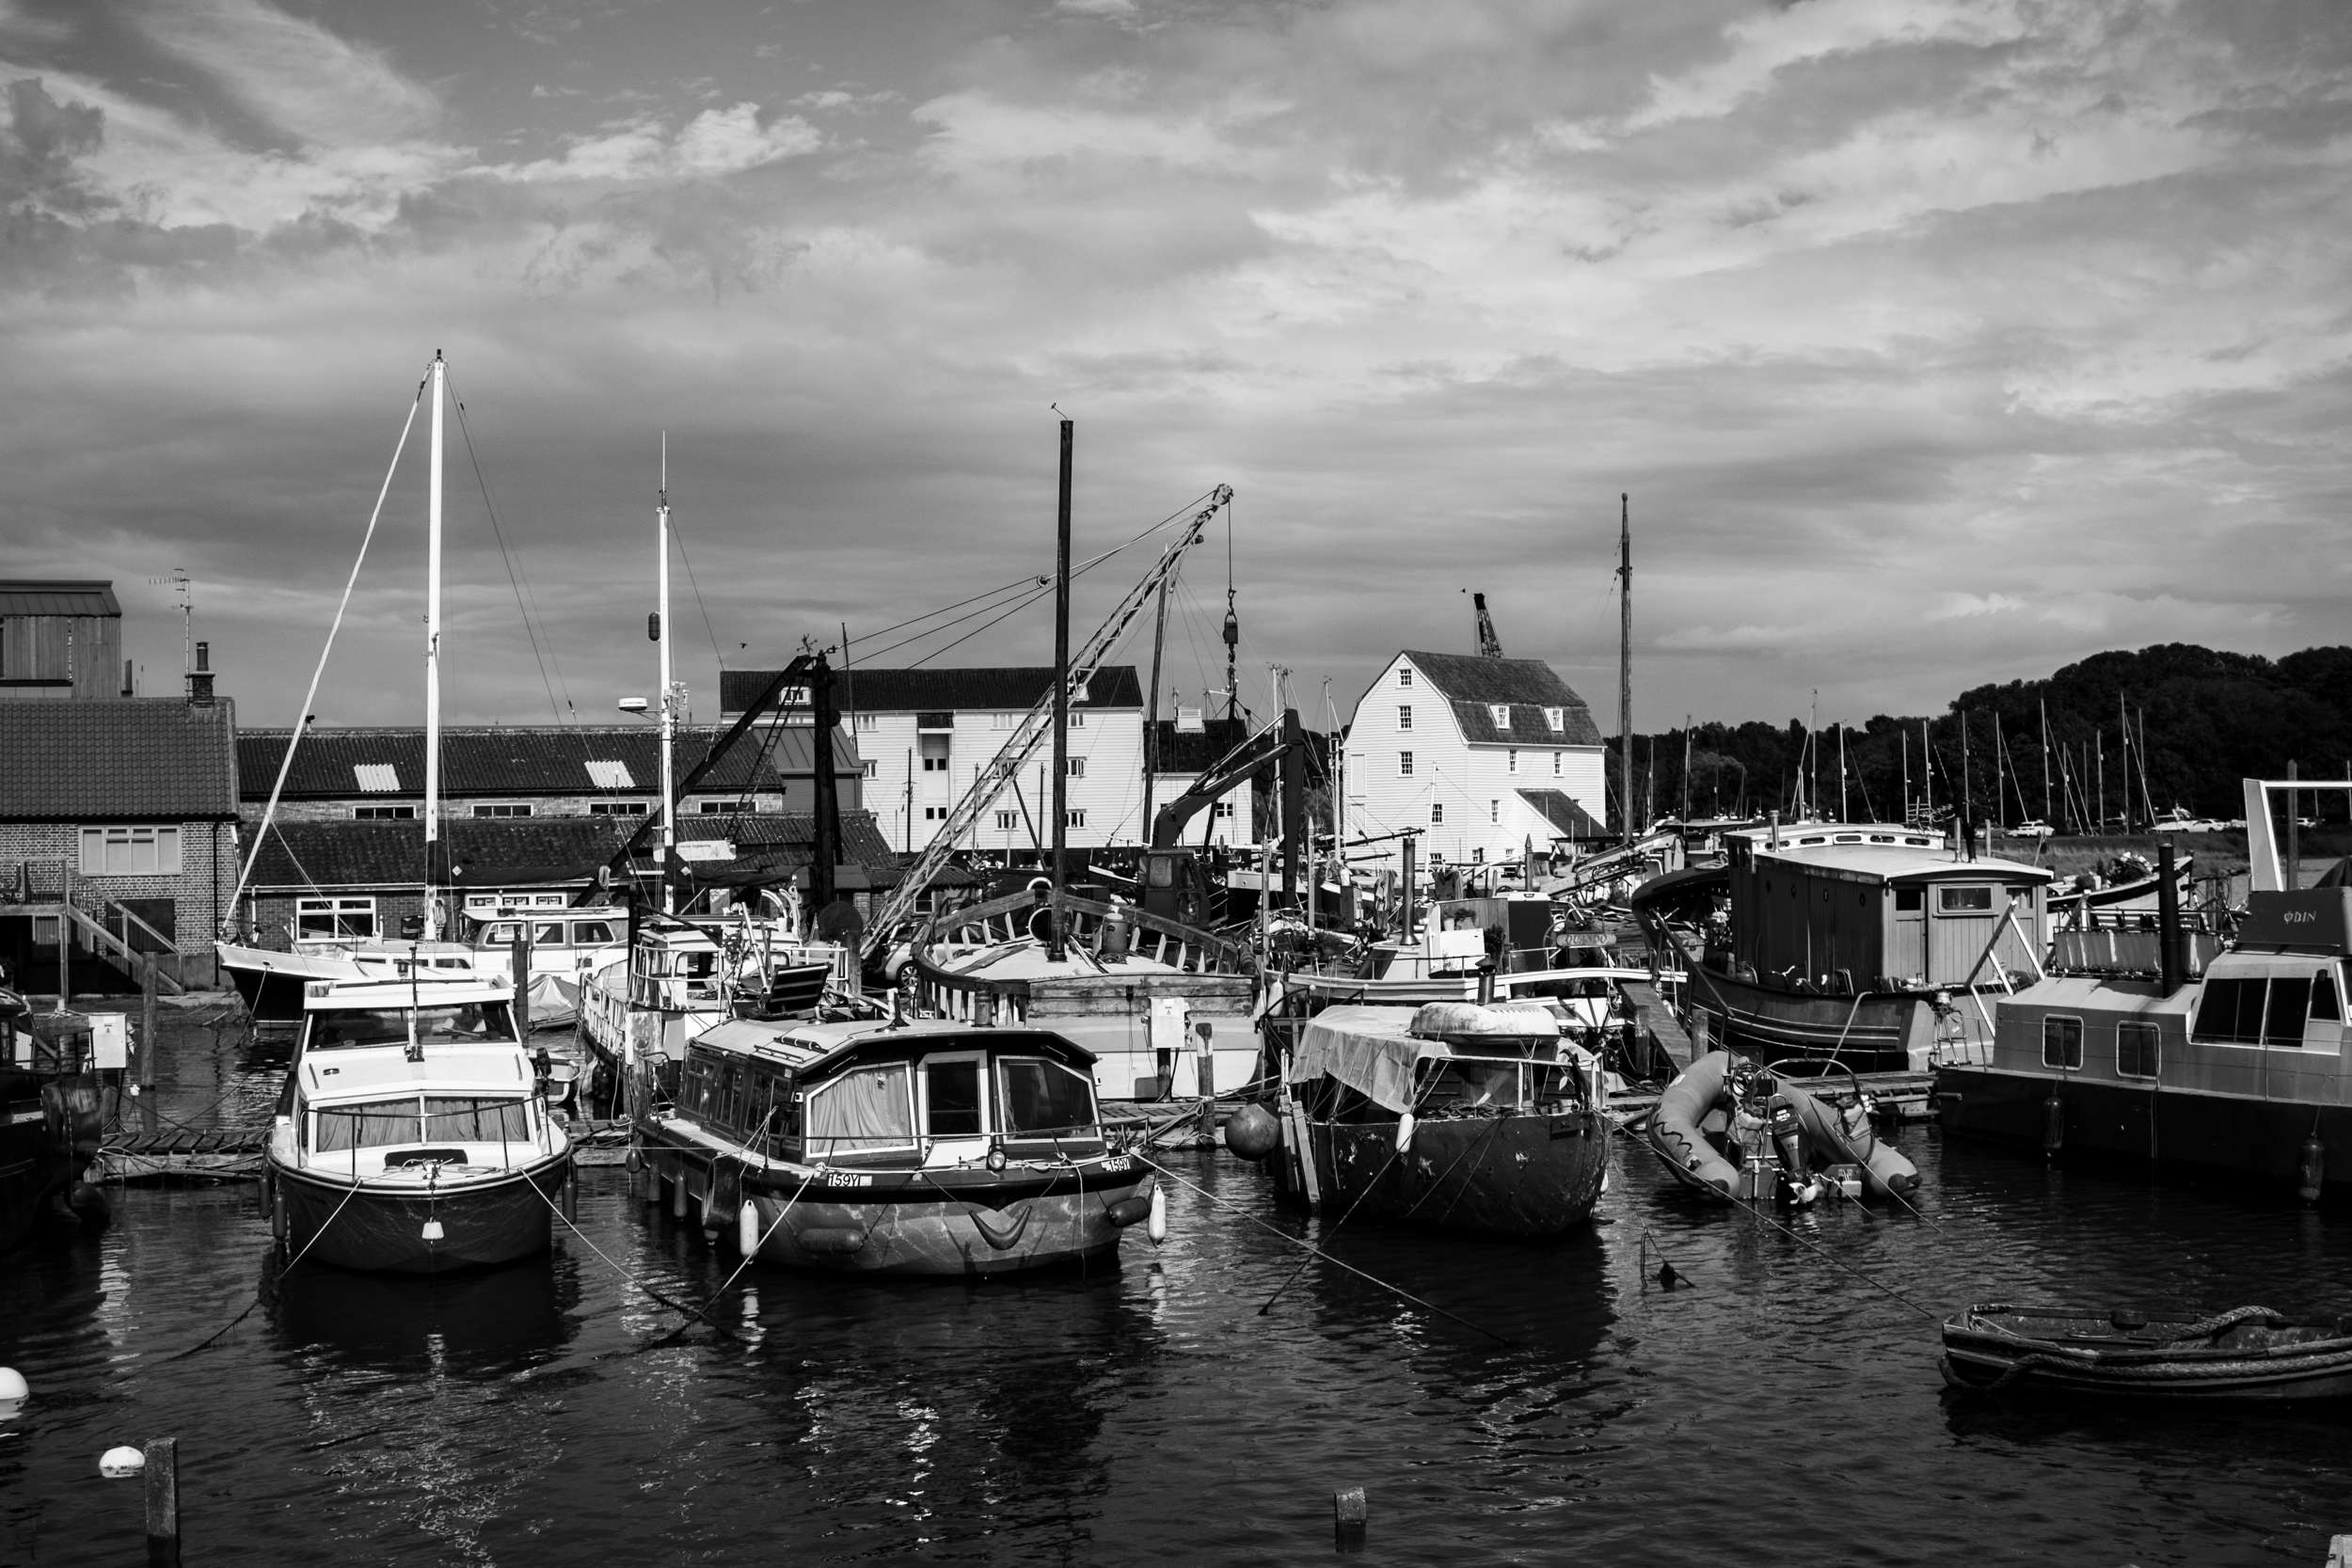 Woodbridge in suffolk, one of my favourite places in the UK. Shot on the Fujifilm X-E1 with post in Lightroom Classic